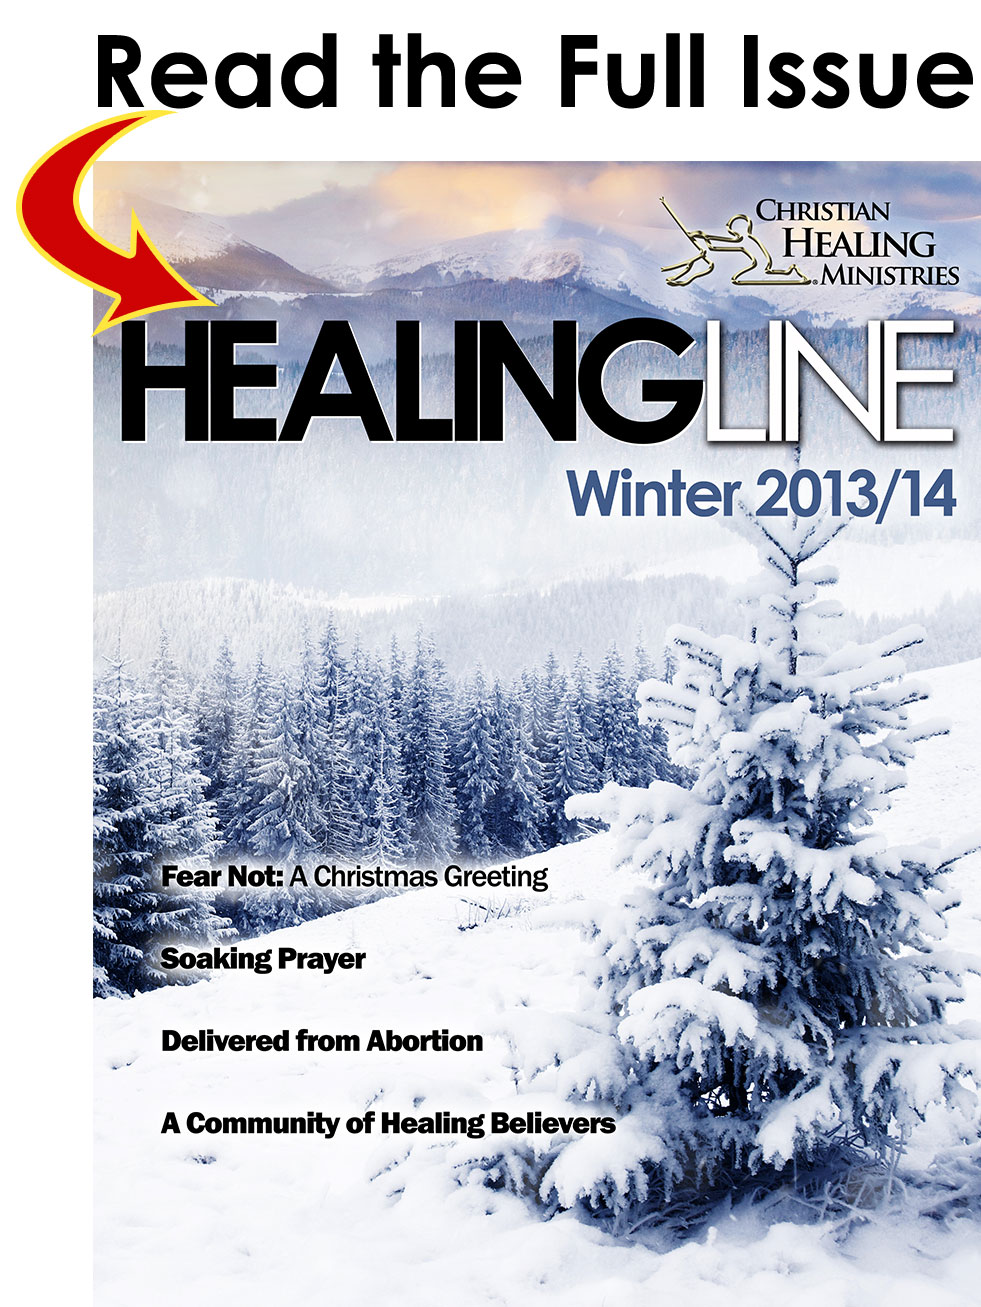 Winter 2013/14 Issue